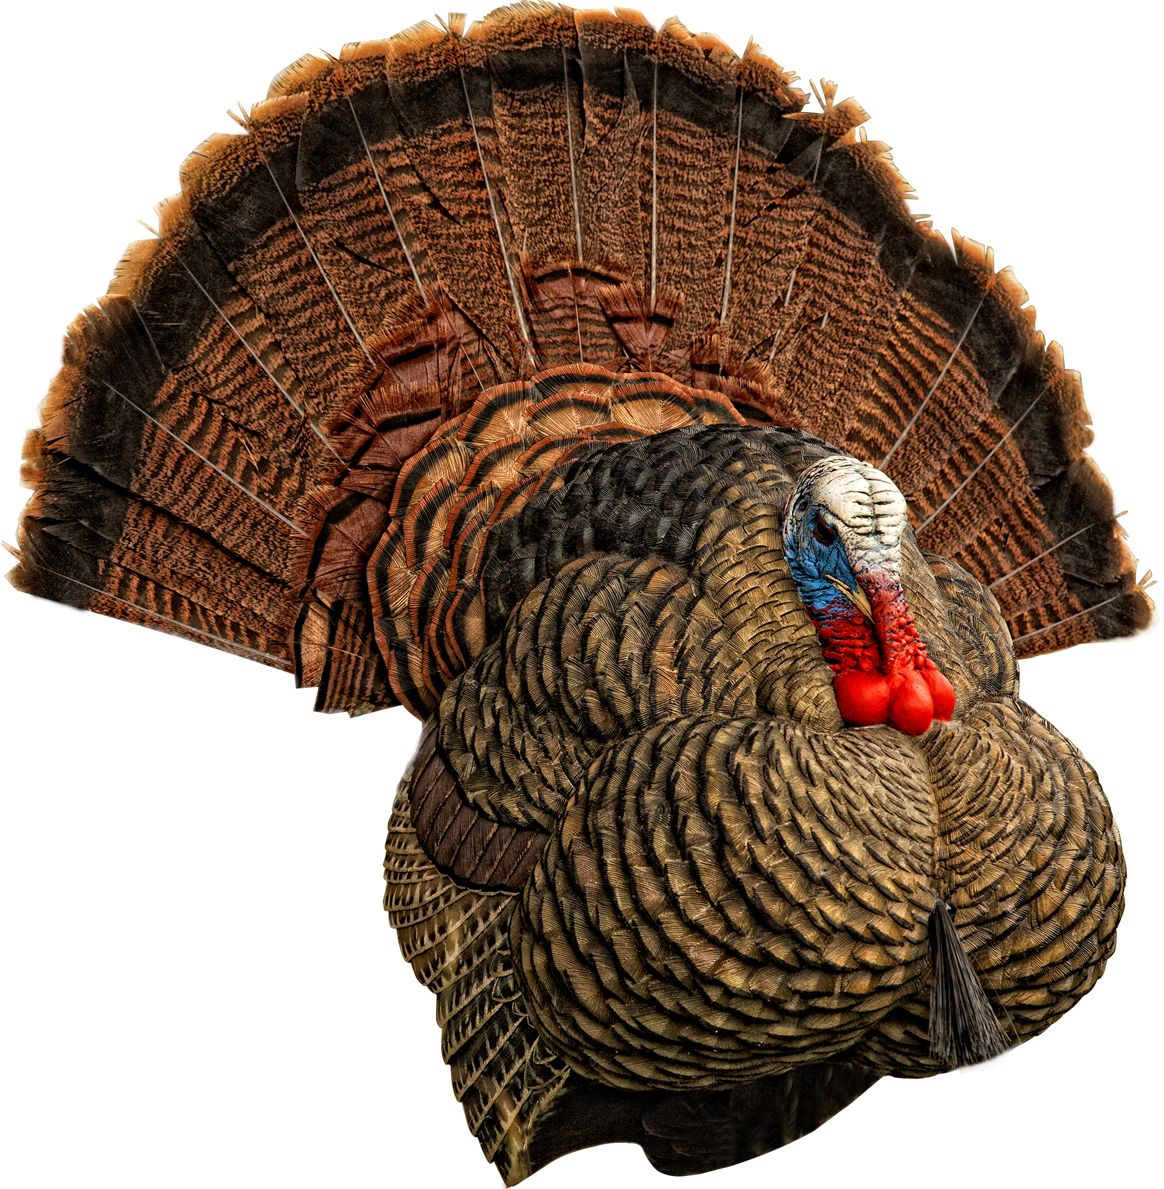 Avian X LCD Strutter Turkey Decoy thumbnail